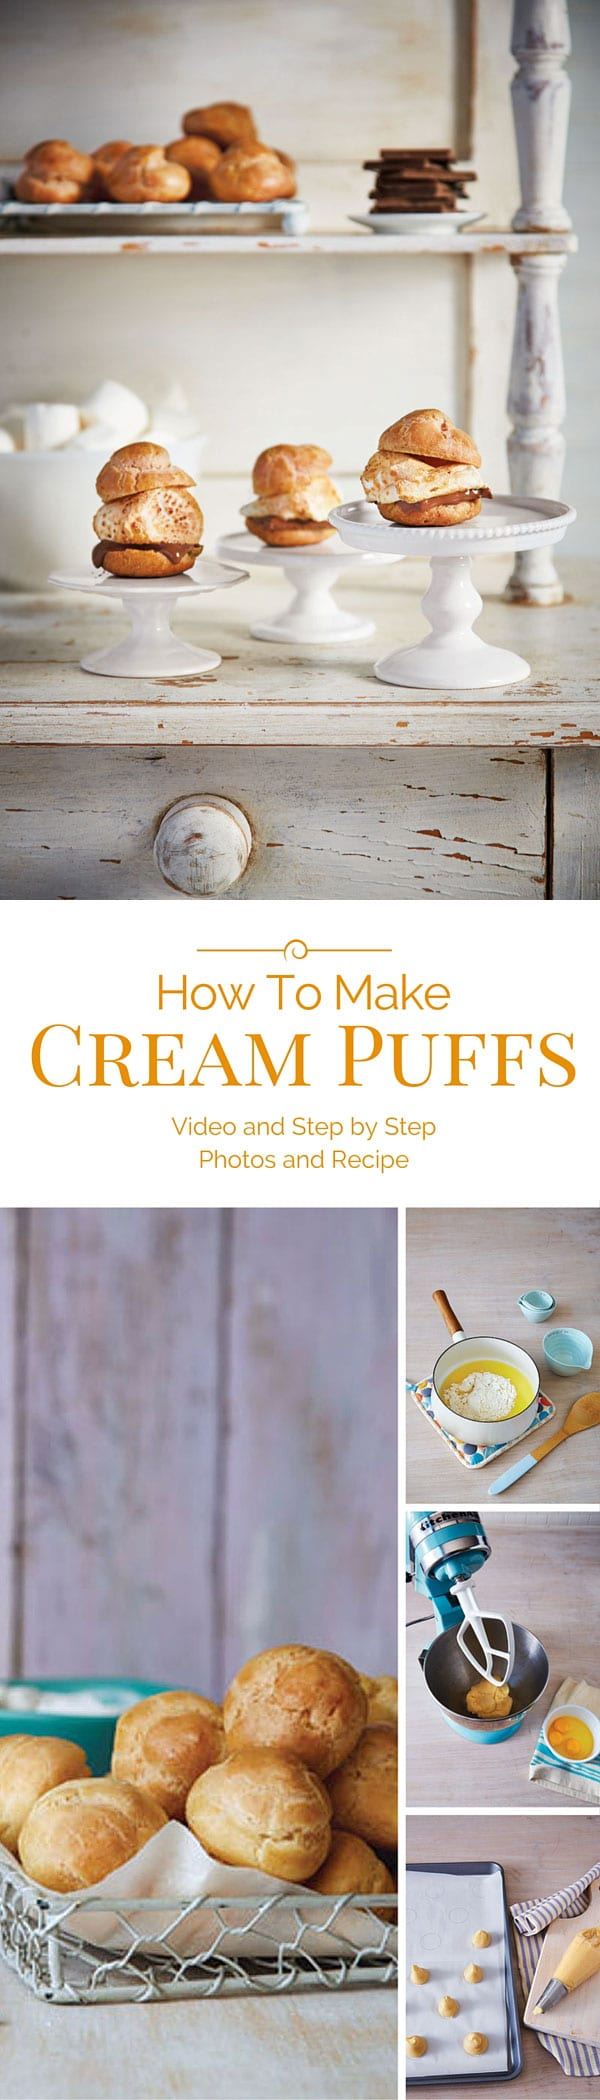 How-To-Make-Cream-Puffs-Pinterest-Collage